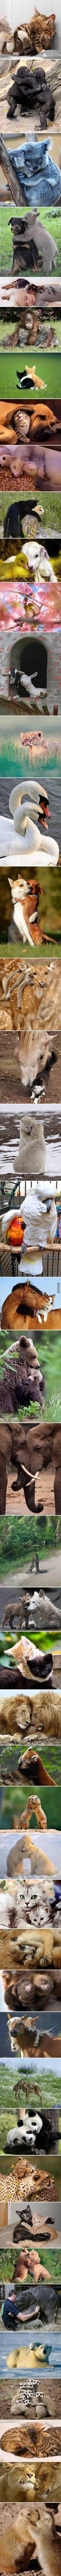 Adorable animals hugging, in case you are having a bad day - 9GAG